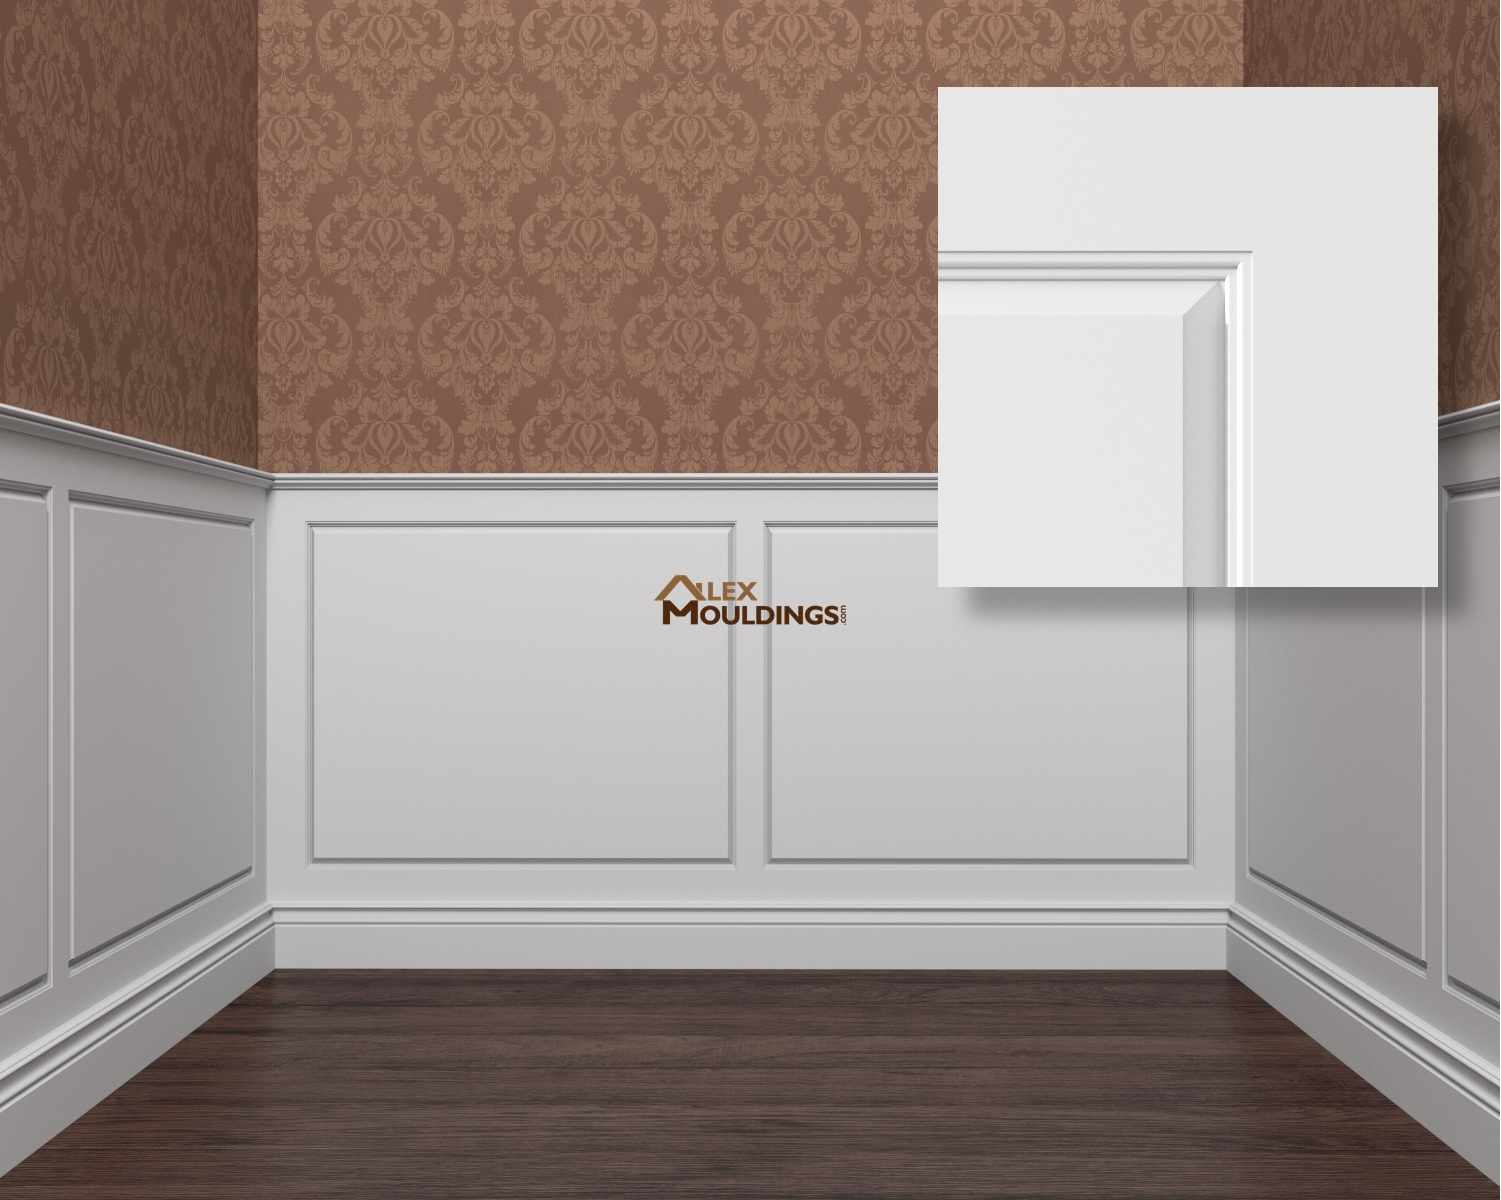 Raised panel 1 wainscoting